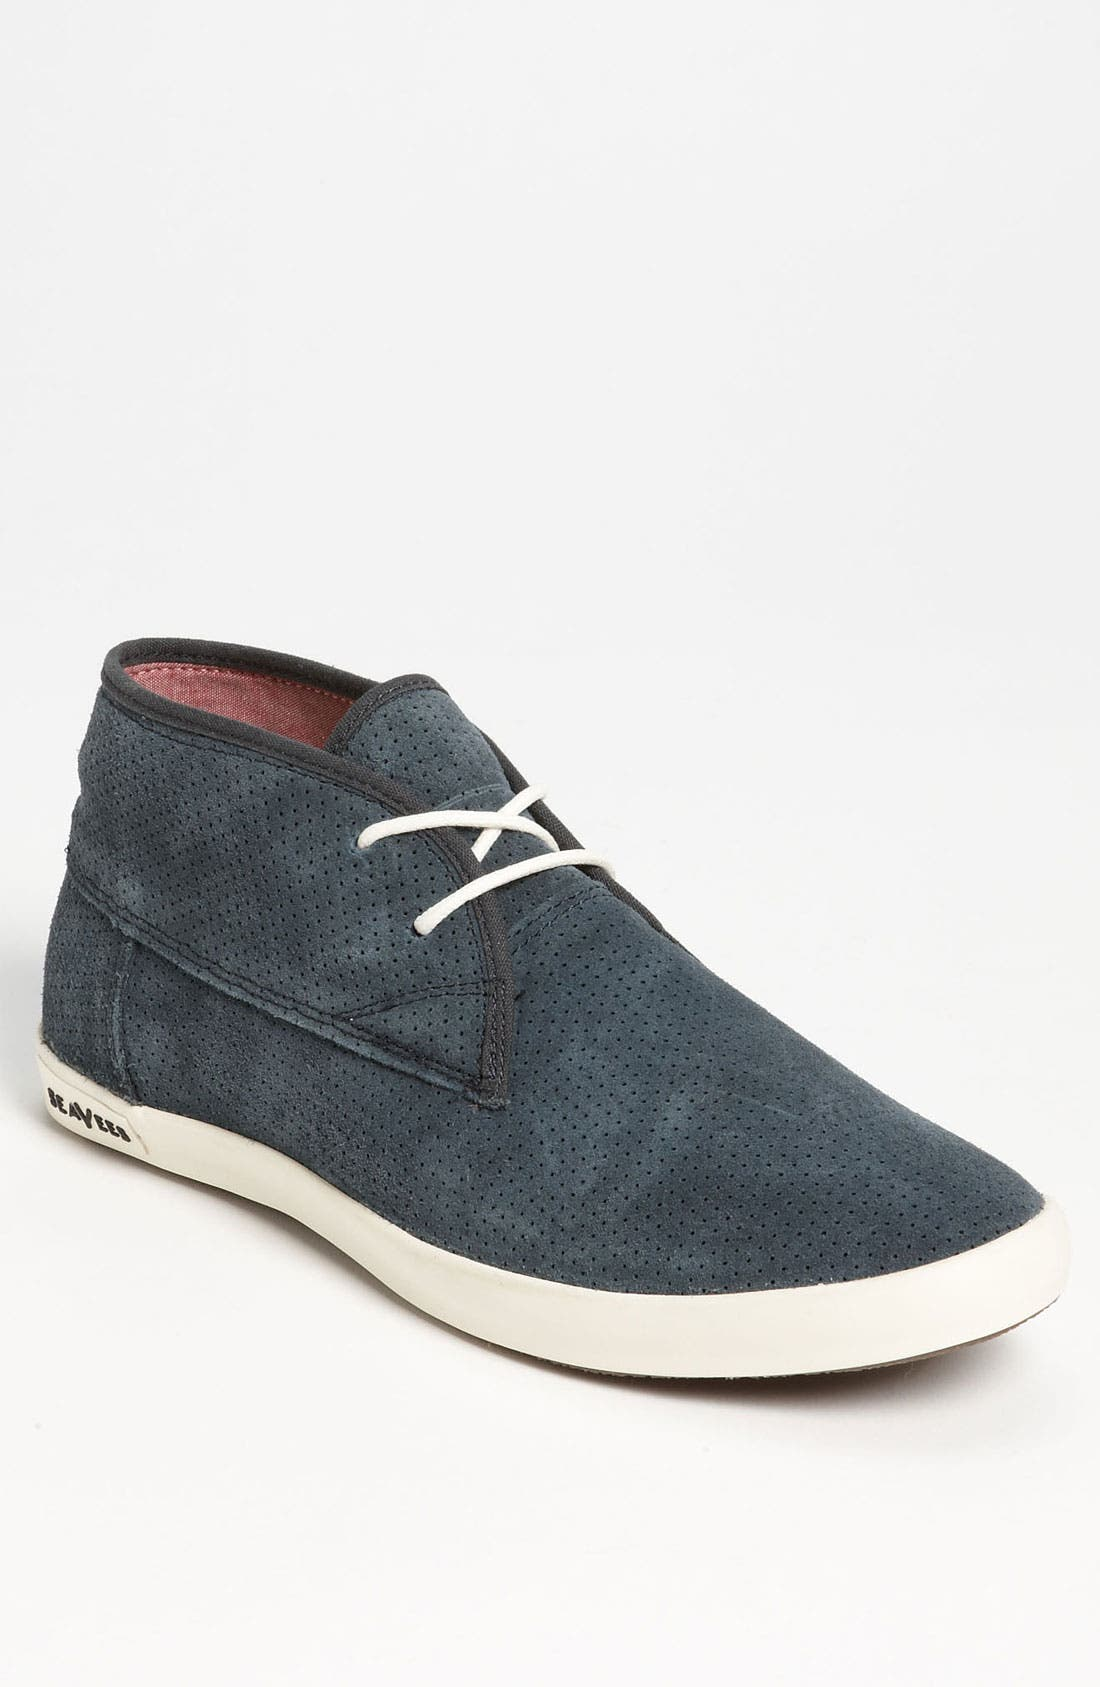 Main Image - SeaVees '04/60 Two-Eye Floater' Perforated Chukka Boot (Online Only)